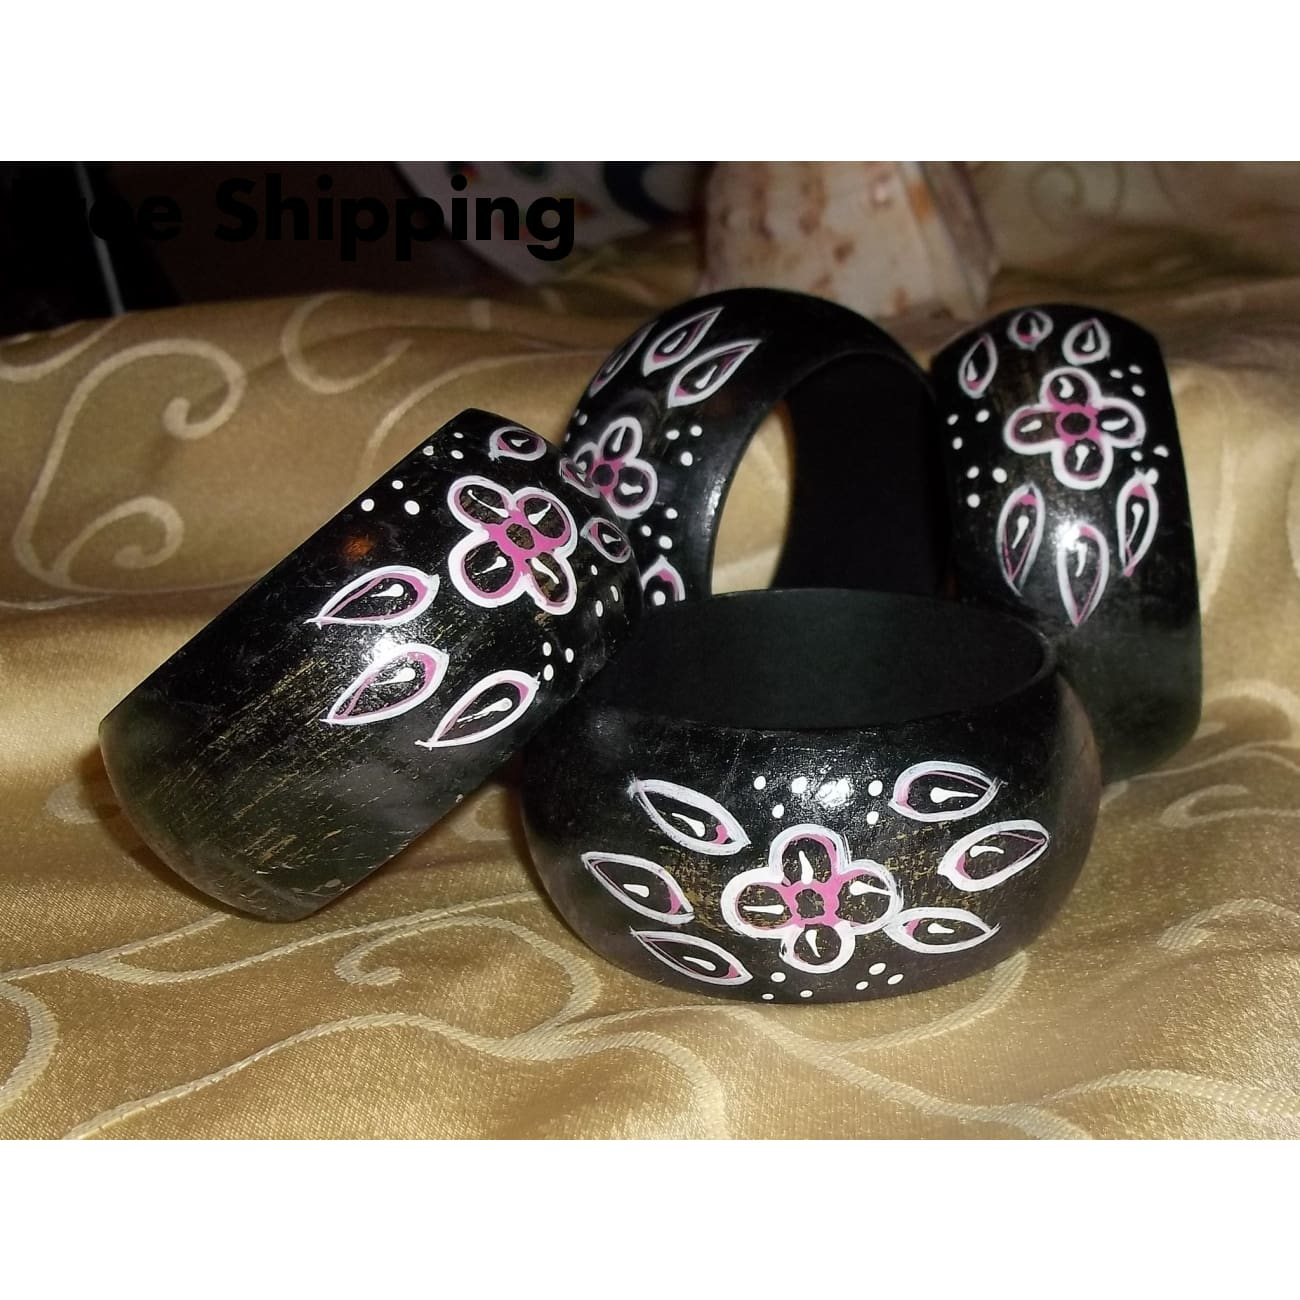 Vintage Rustic Black Dry Brushed W/ Pink & White Hand Painted Floral Design Wooden Bangle Bracelet - Vintage Handcrafted Artisan